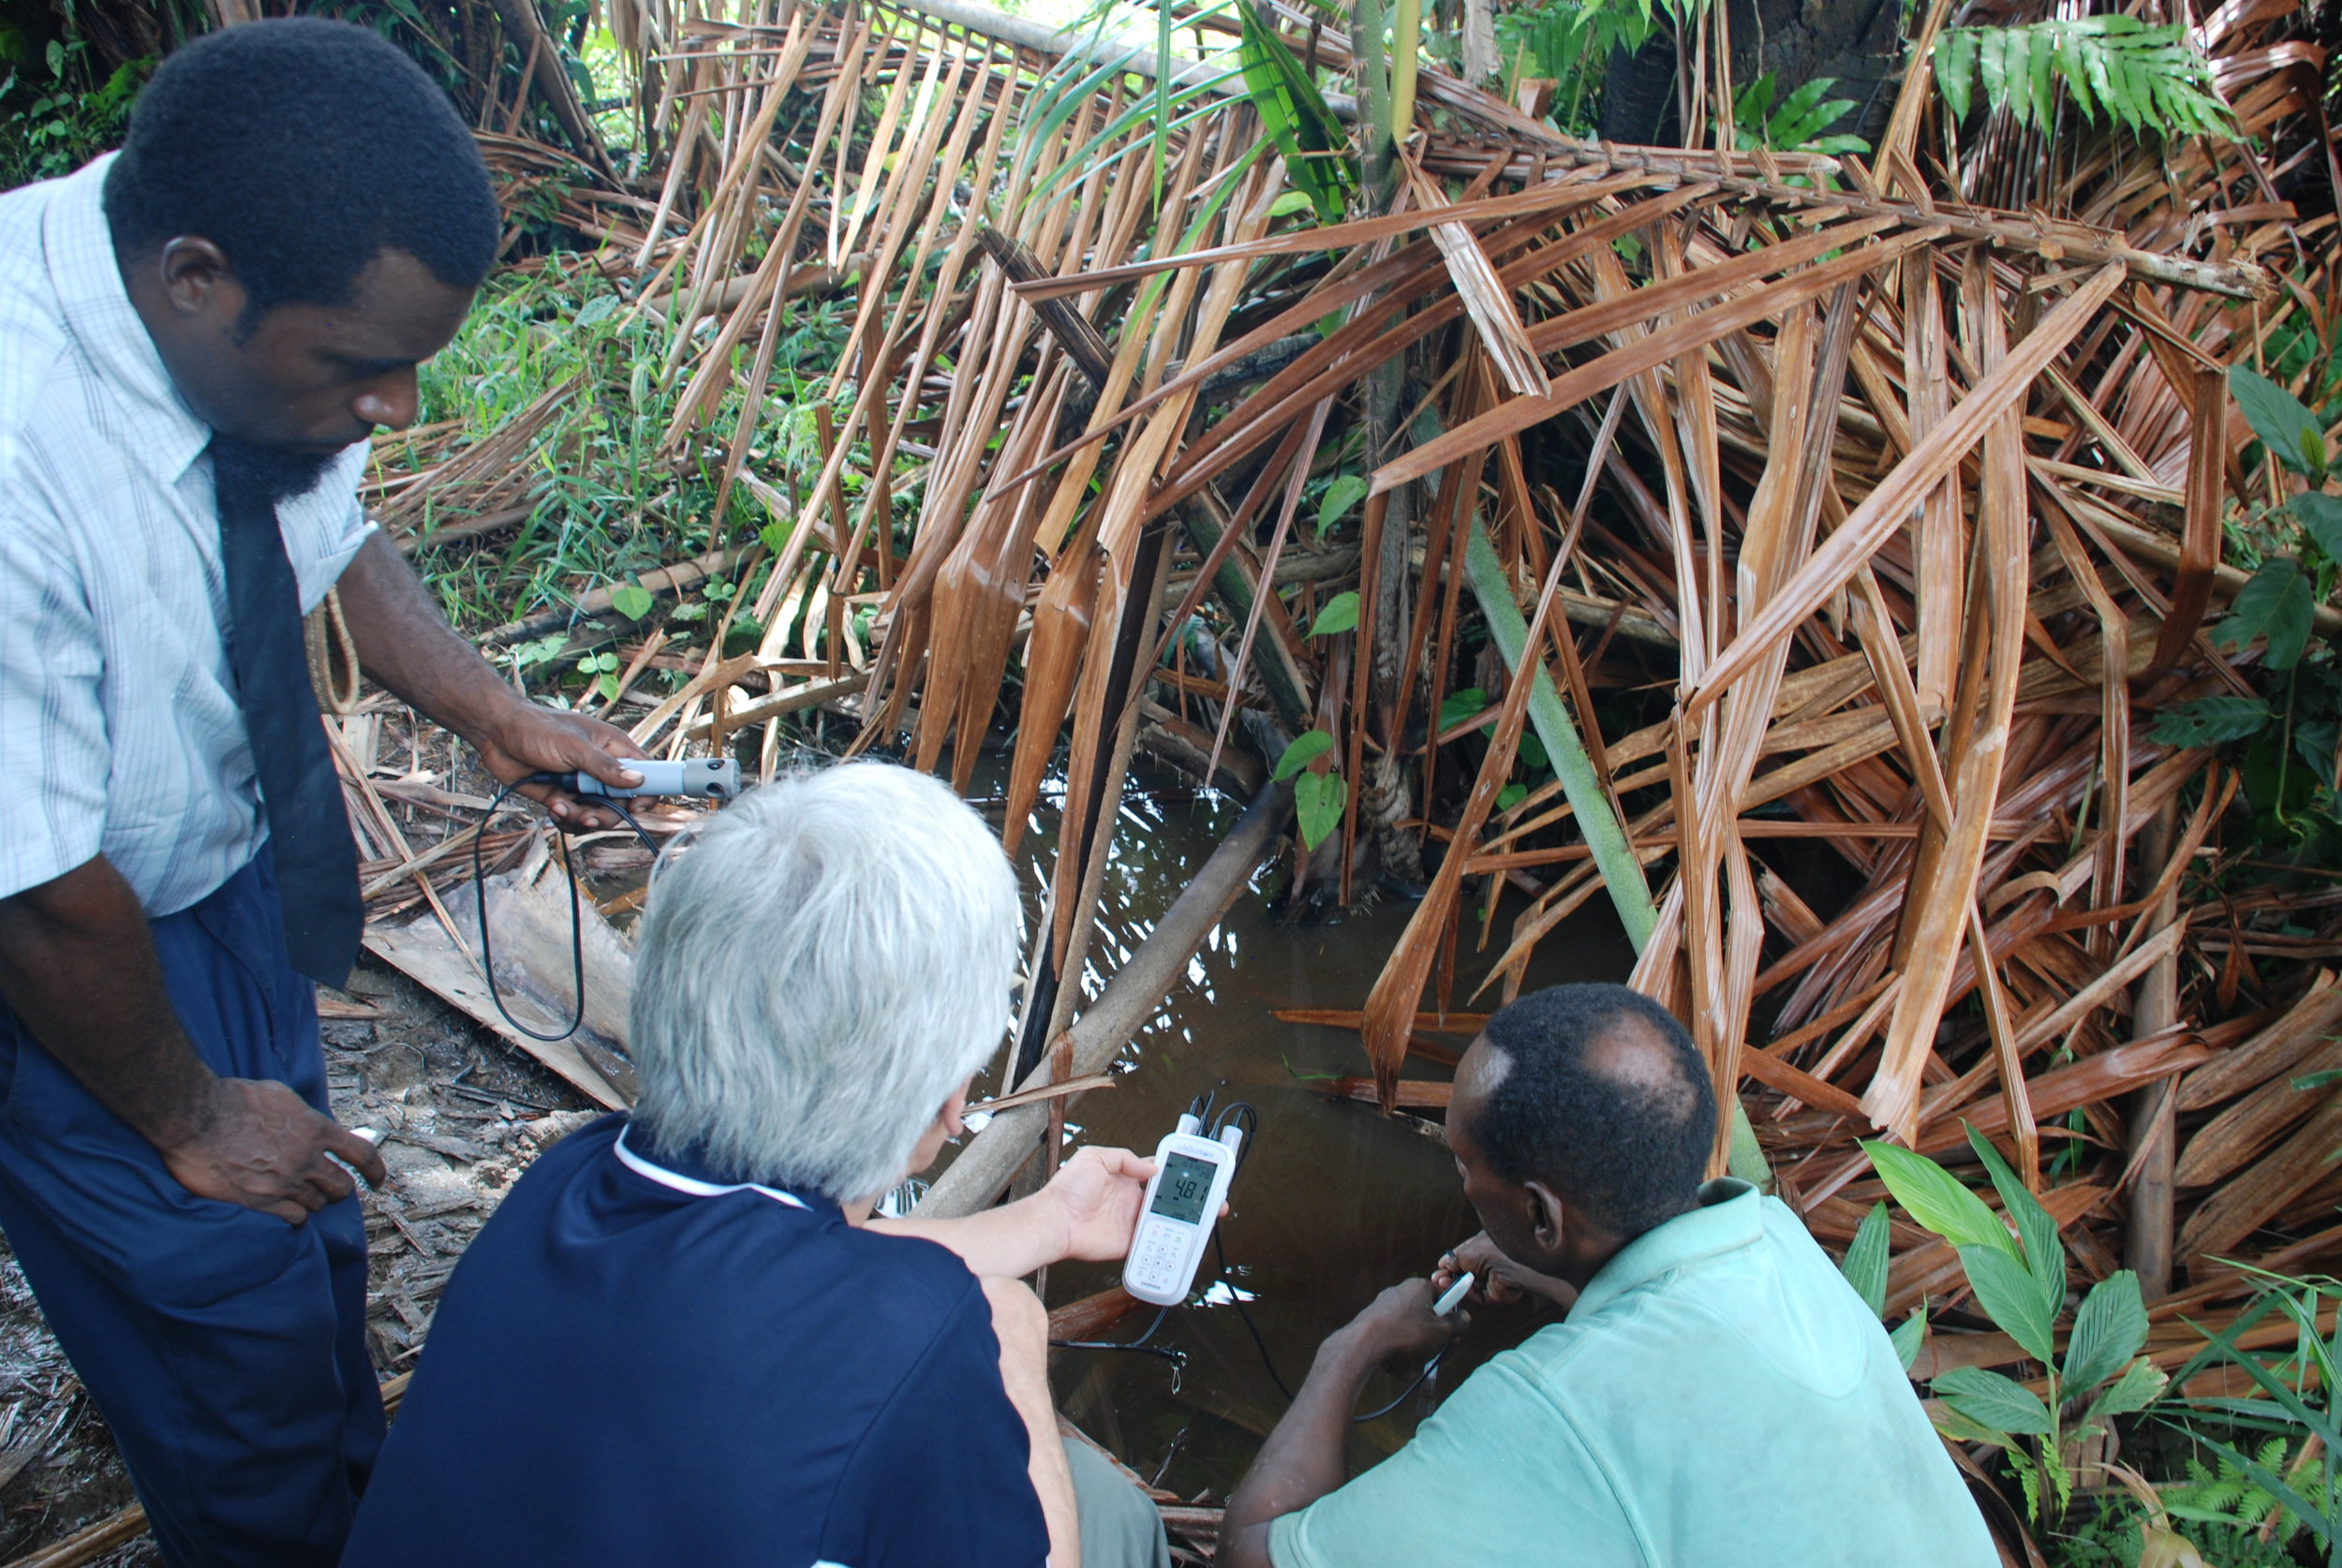 Together with the local villagers, Martin tests the water quality of the bush well.    PHOTO: Madeleine Brezger